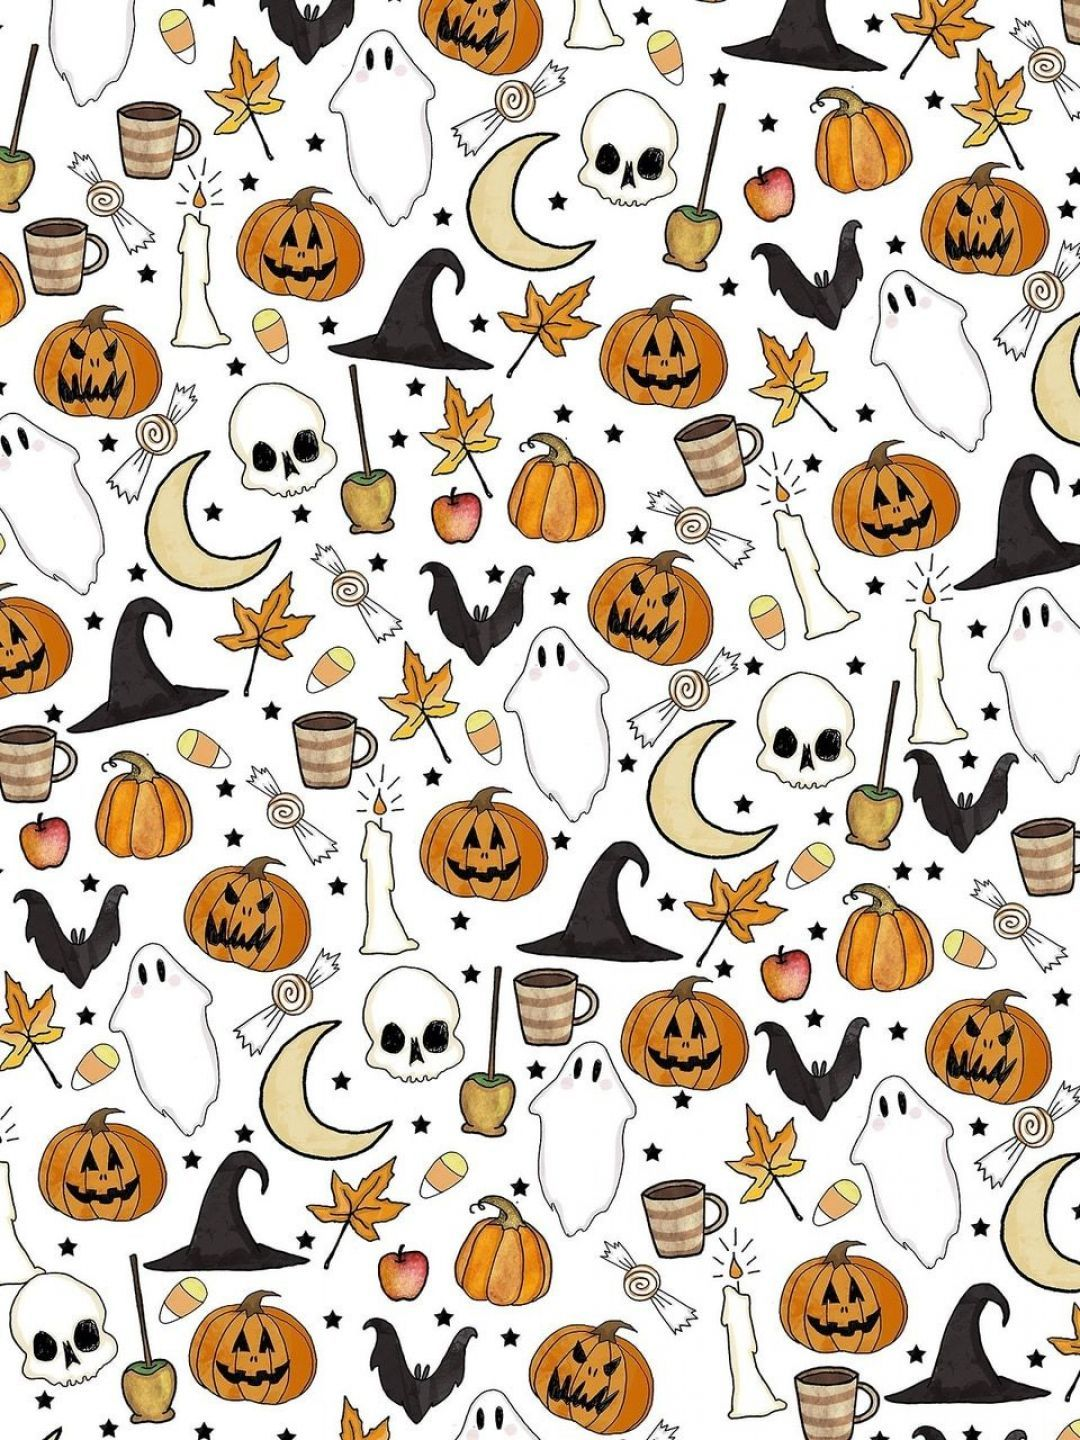 Halloween Girl Android Iphone Desktop Hd Backgrounds Wallpapers 1080p 4k 127713 Hdw Cute Fall Wallpaper Halloween Wallpaper Iphone Fall Wallpaper